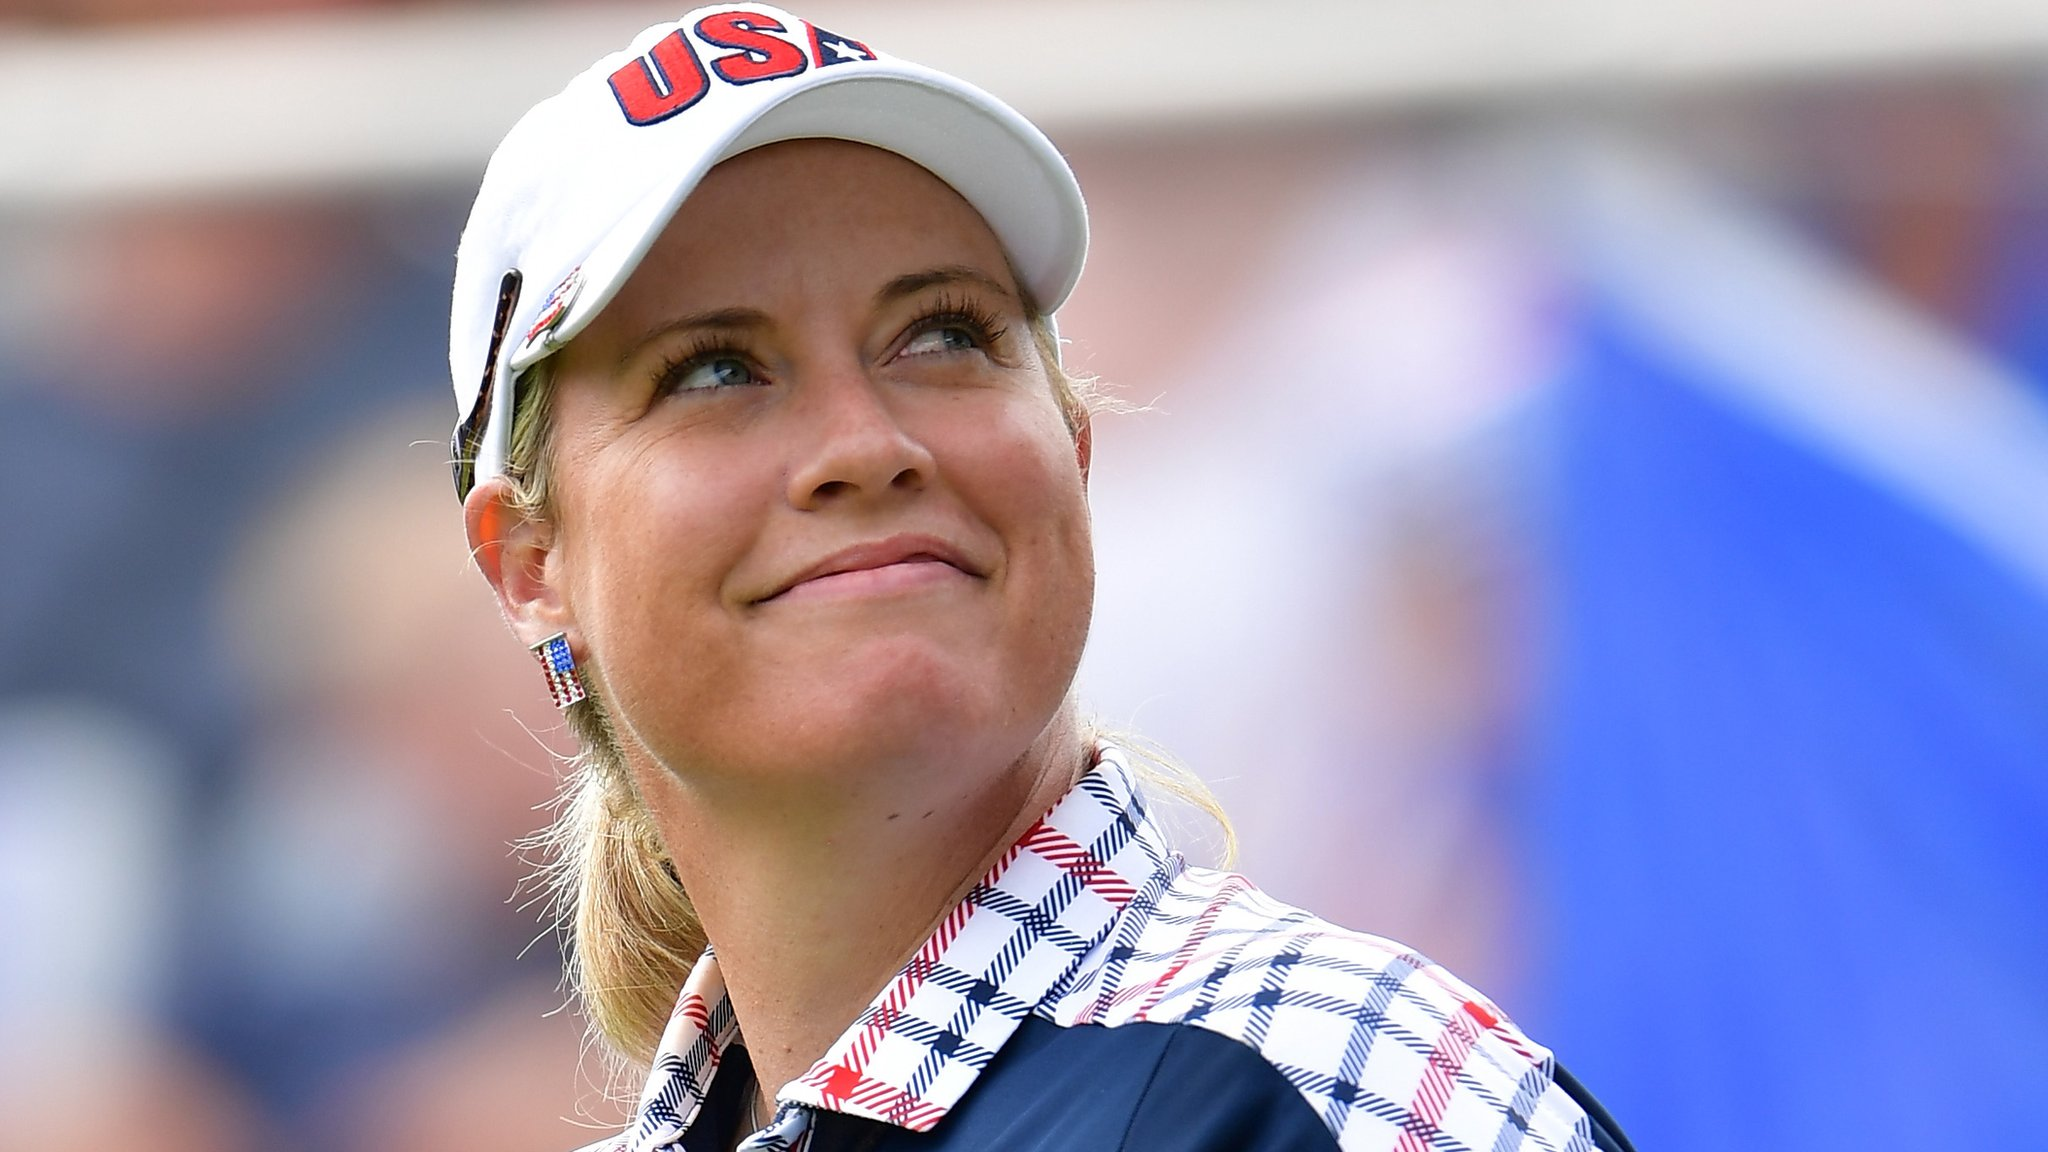 Two-time women's major winner Lincicome to play against men on PGA Tour